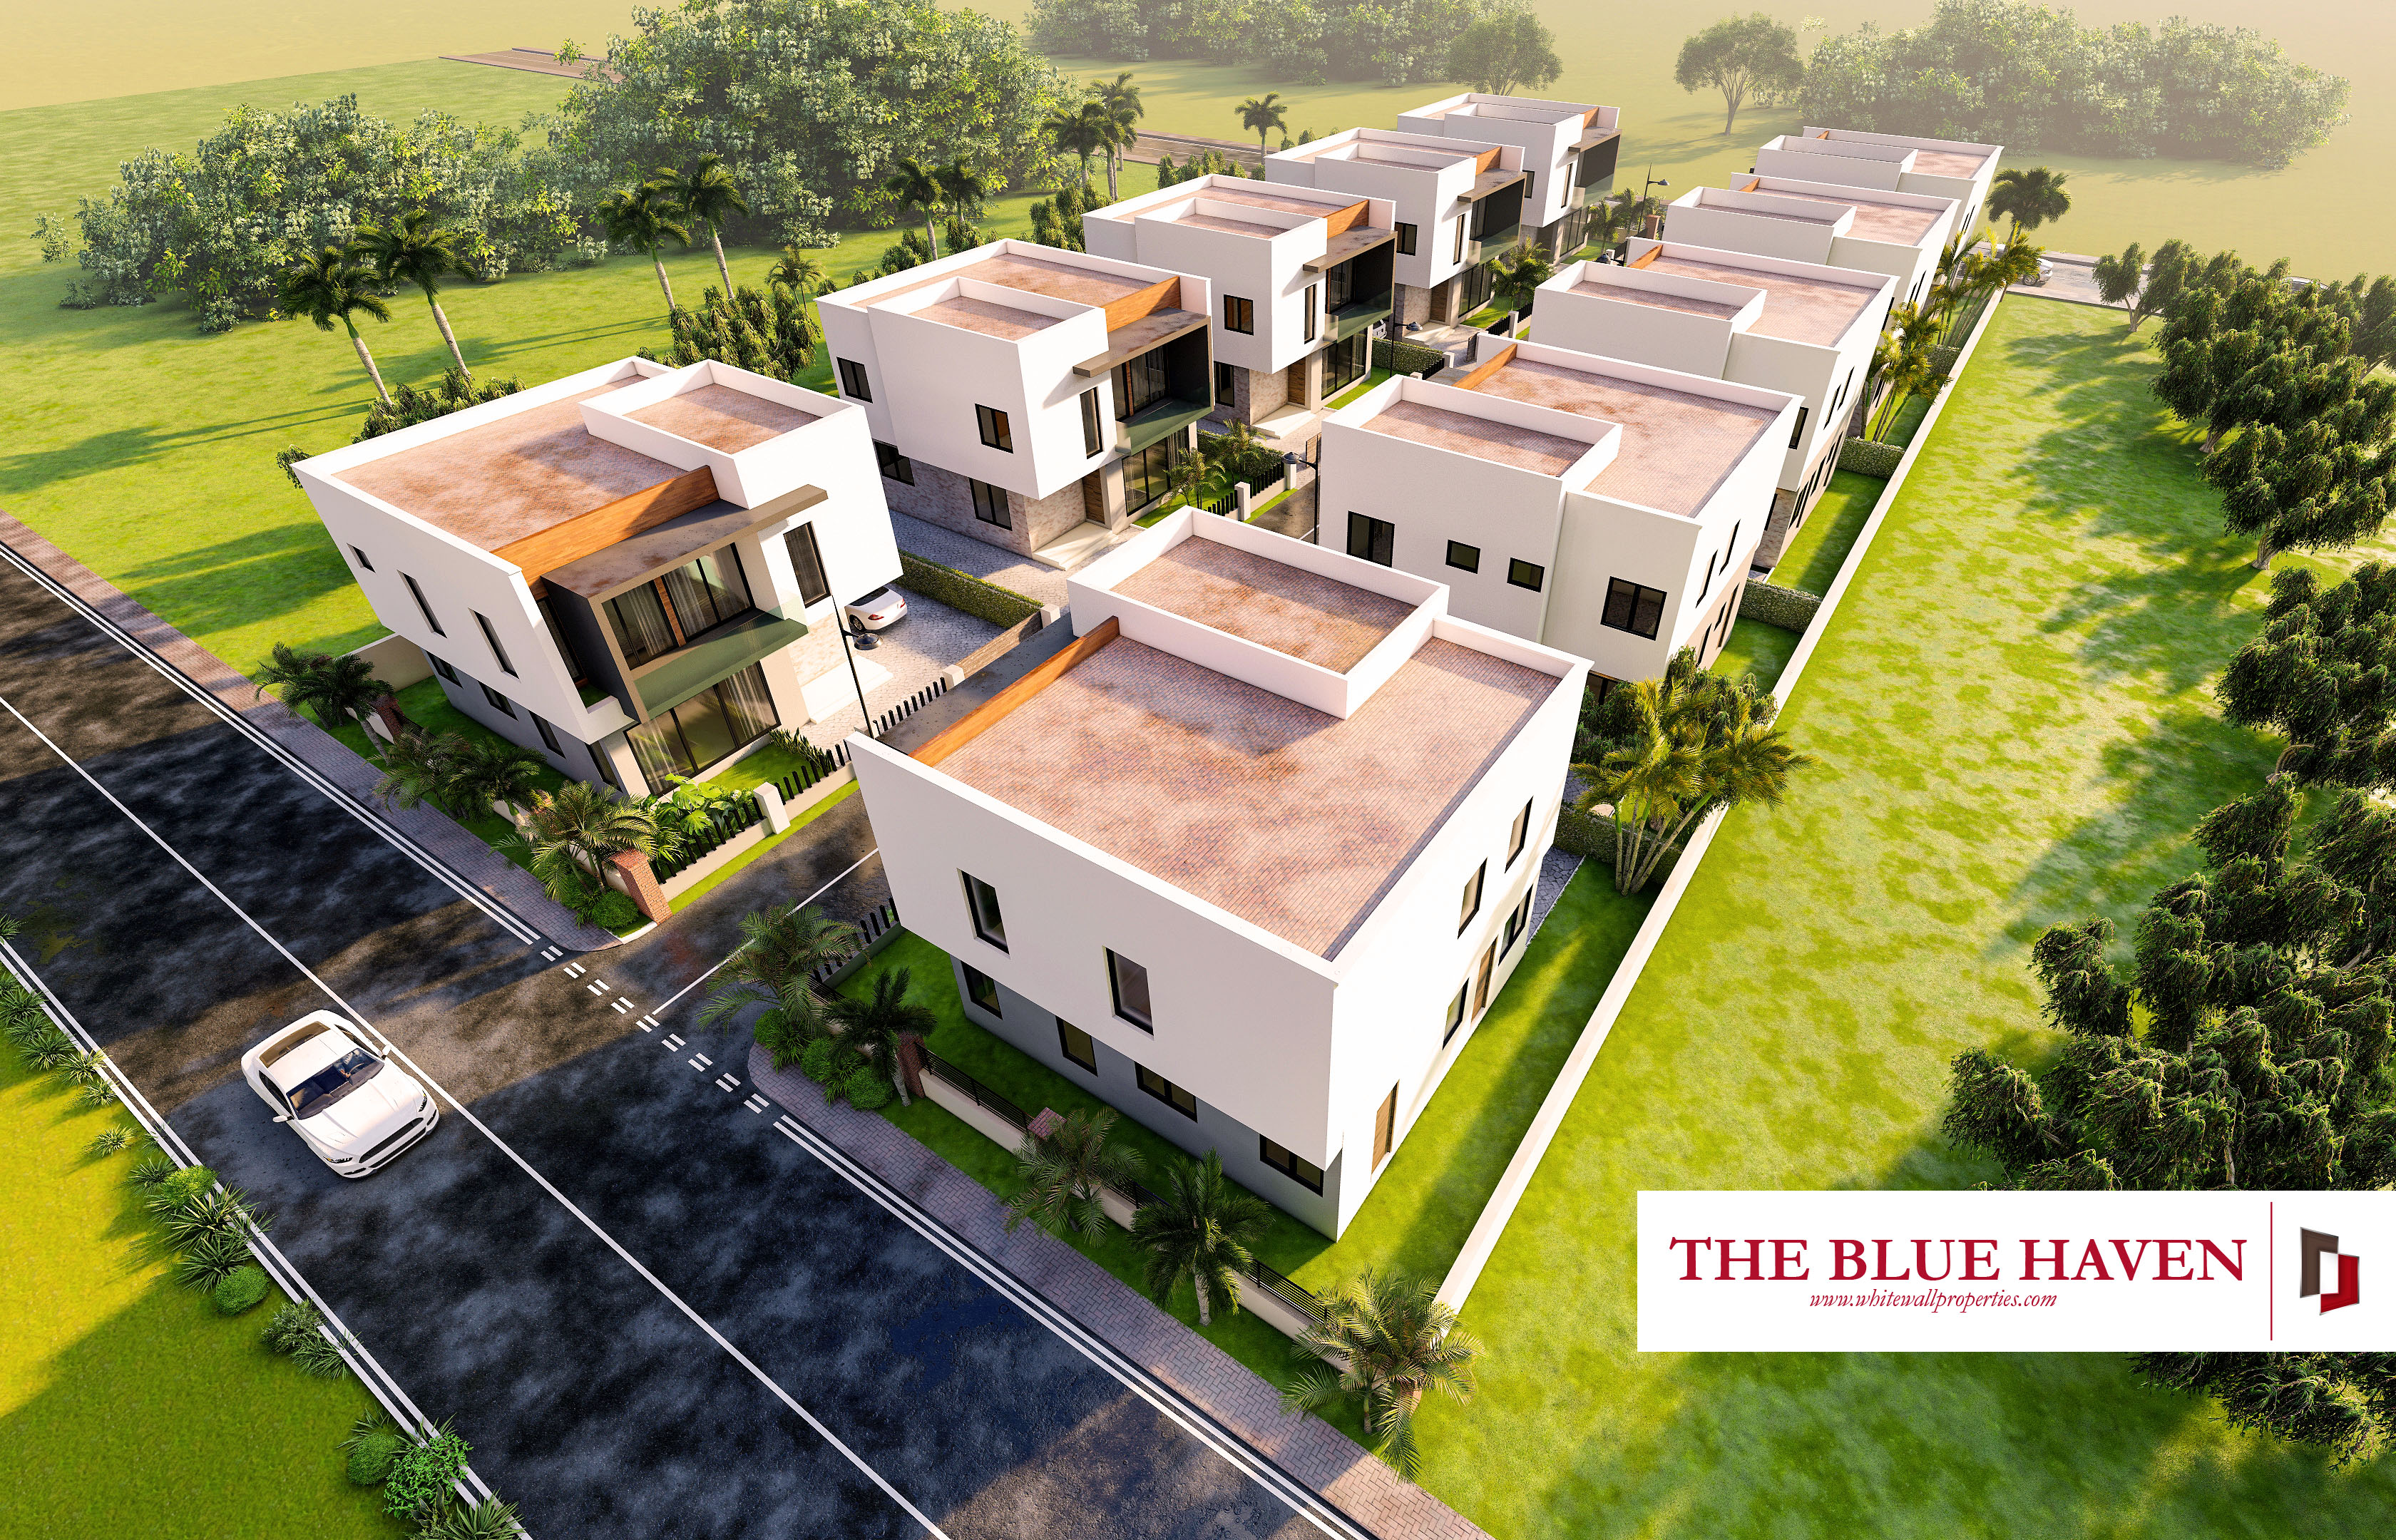 The Blue Haven - Ogbodjo, Accra